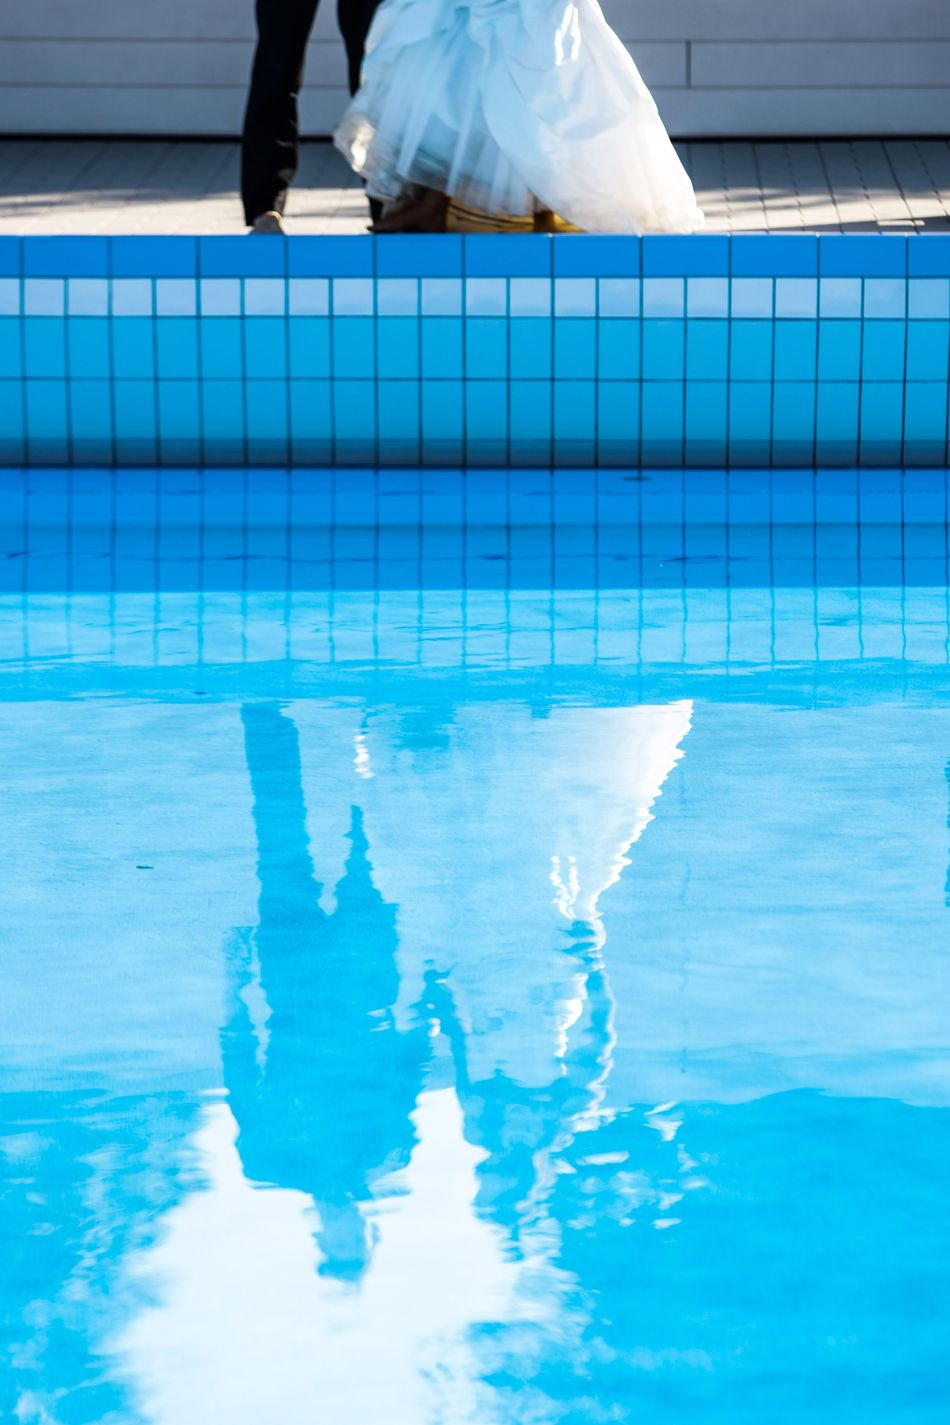 Bride and groom standing on the side of a swimming pool Swimming Pool Low Section Water Reflection Human Leg One Person Blue Day Human Body Part Leisure Activity Outdoors Vacations Real People One Man Only Sky Adults Only People Adult Wedding Bridal Bride Groom